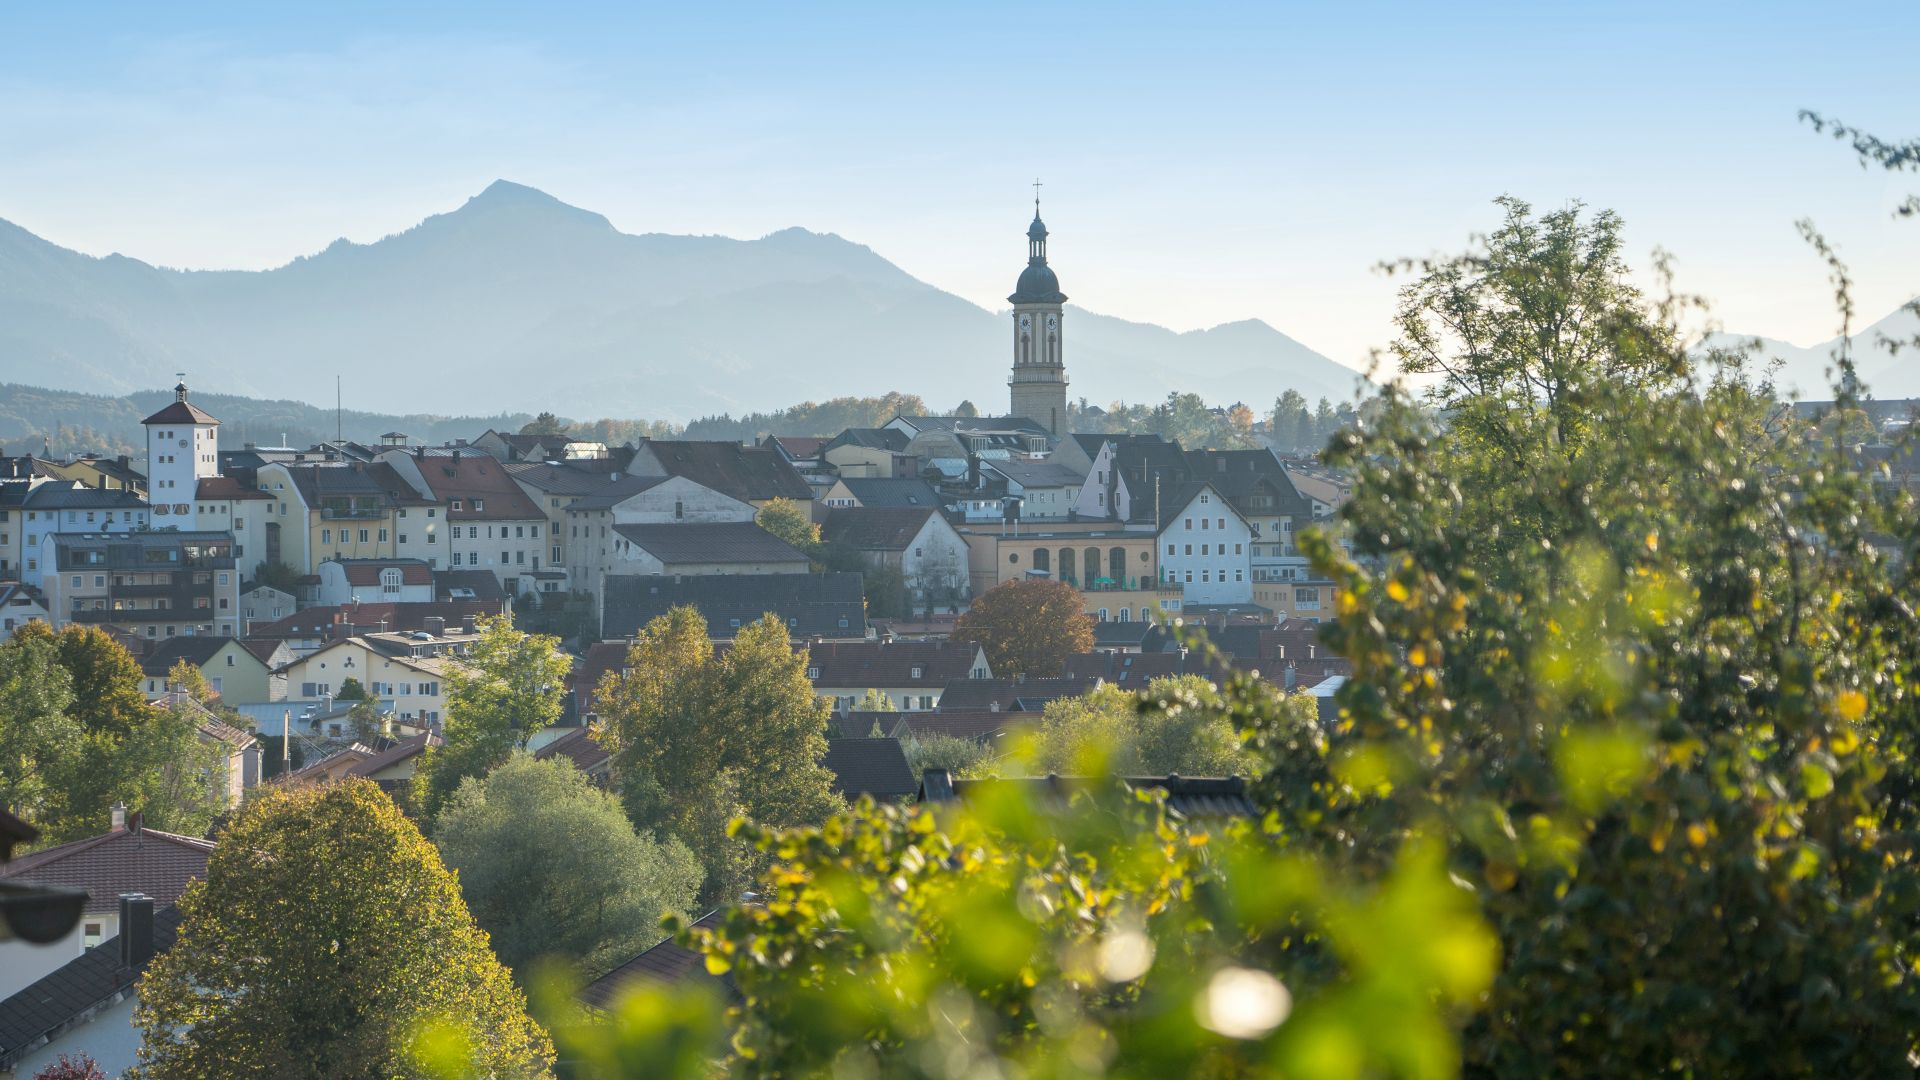 Traunstein: Panoramic view with village centre and mountains